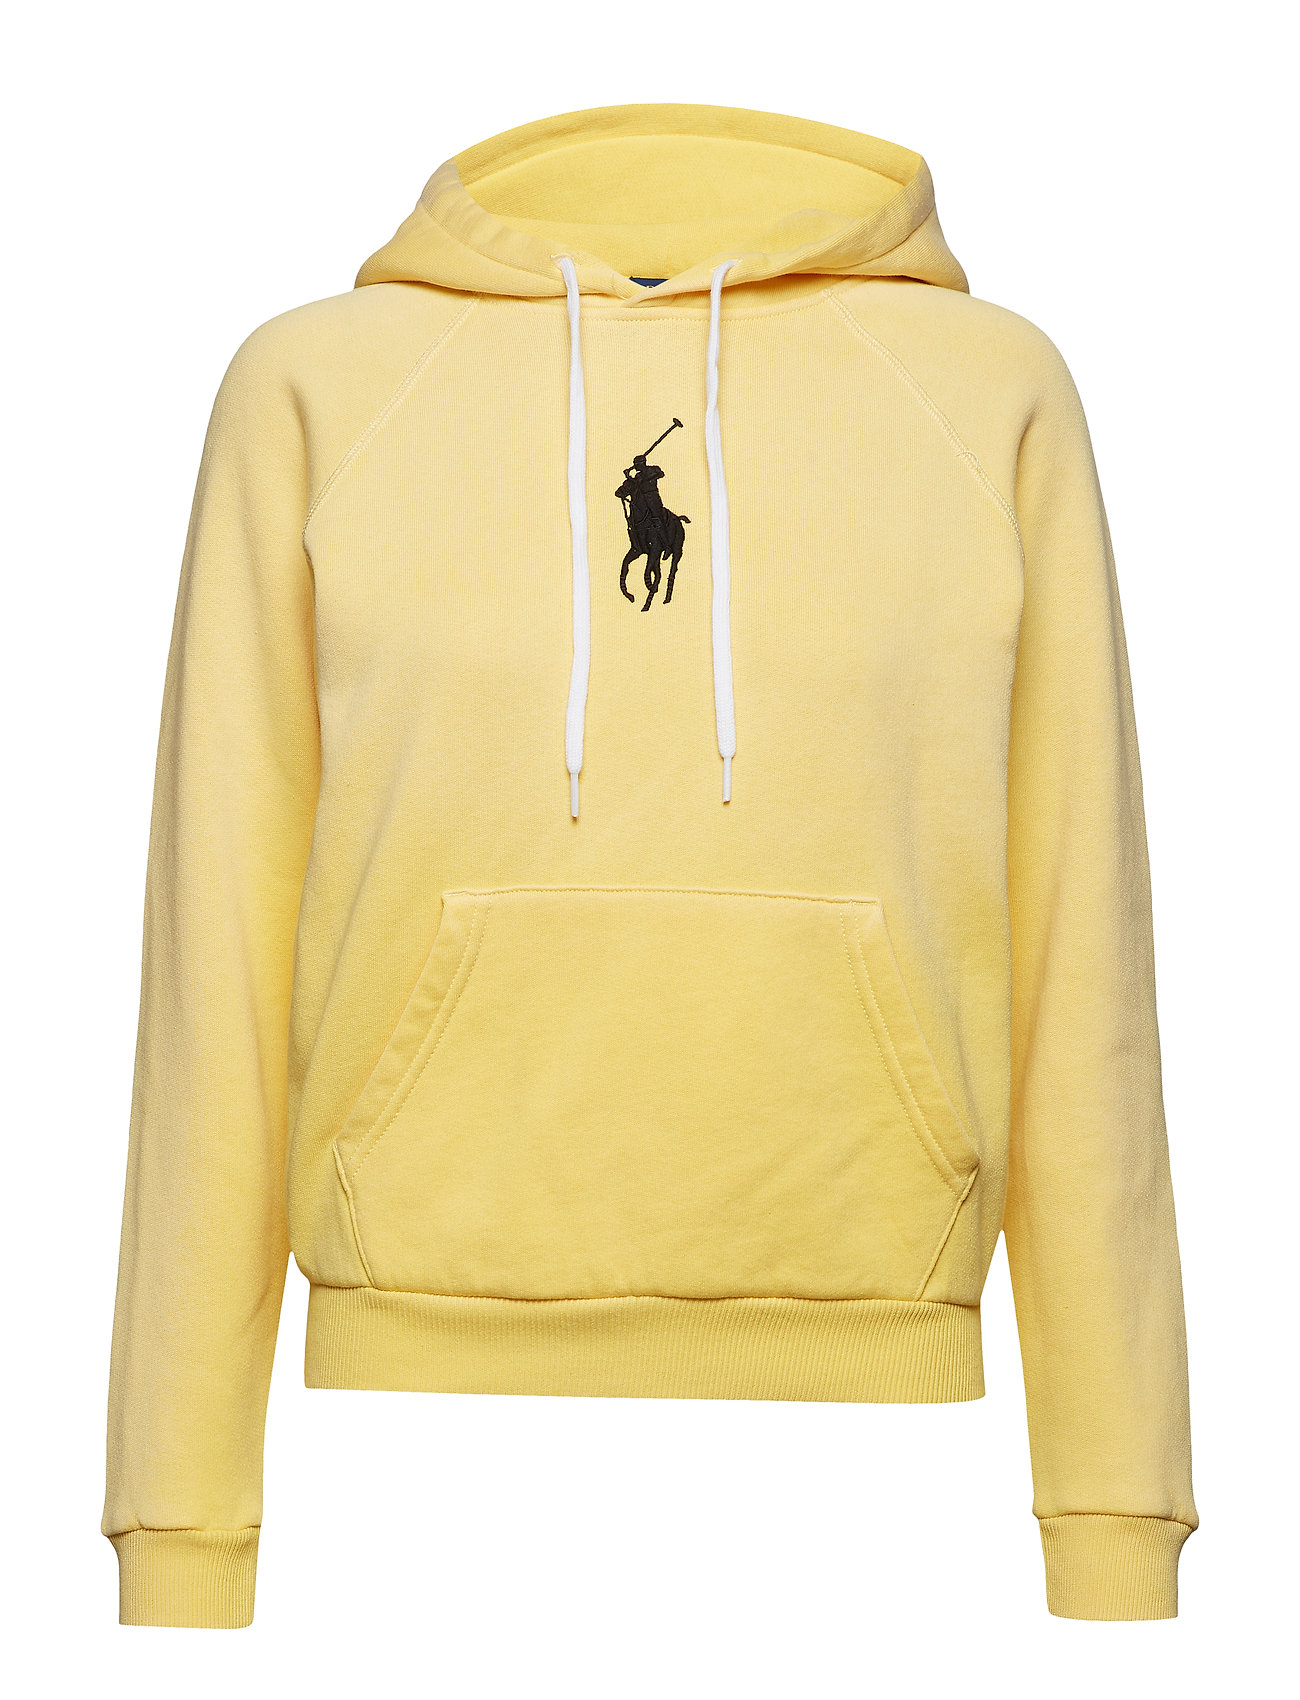 Polo Ralph Lauren Big Pony Fleece Hoodie - FALL YELLOW